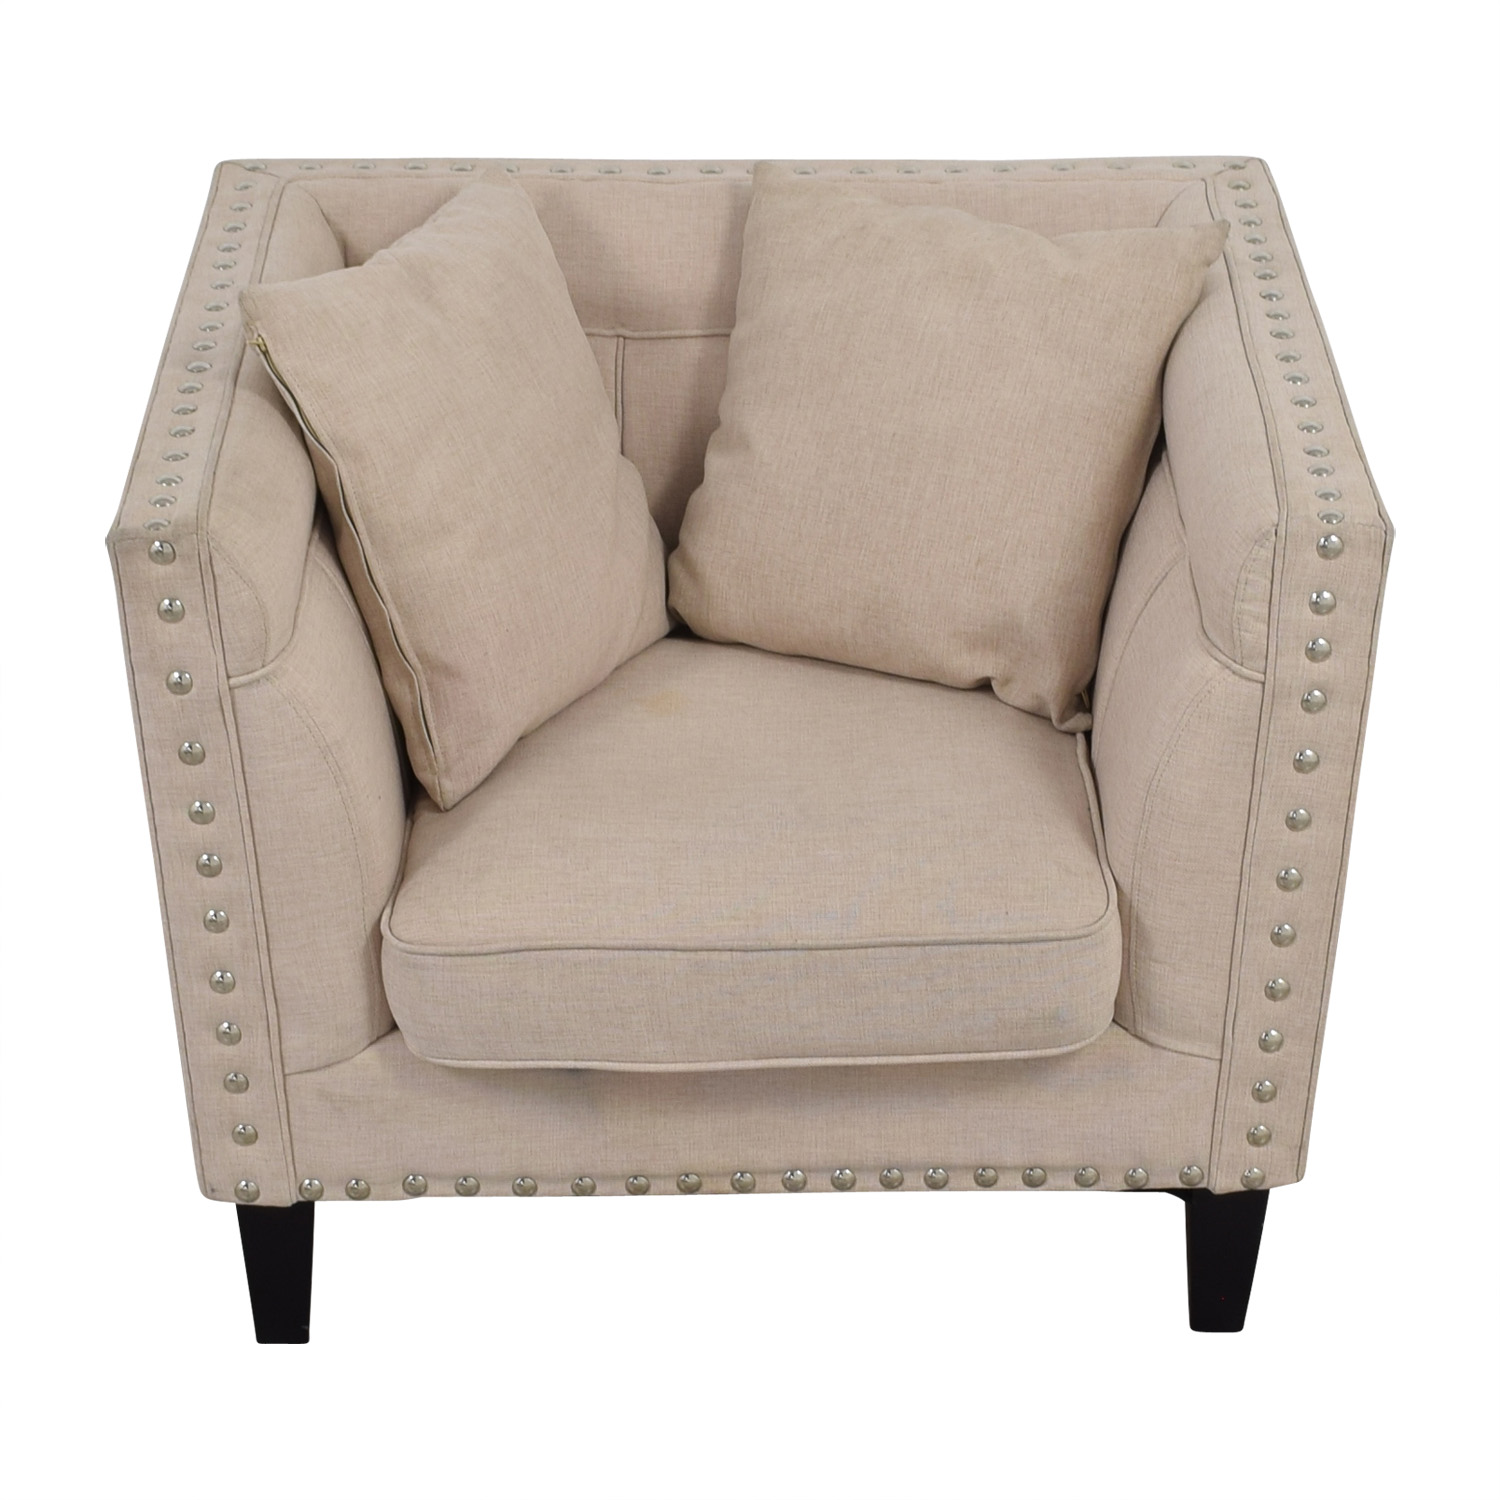 House of Hampton House of Hampton Square Beige Upholstered Nailhead Arm Chair nyc